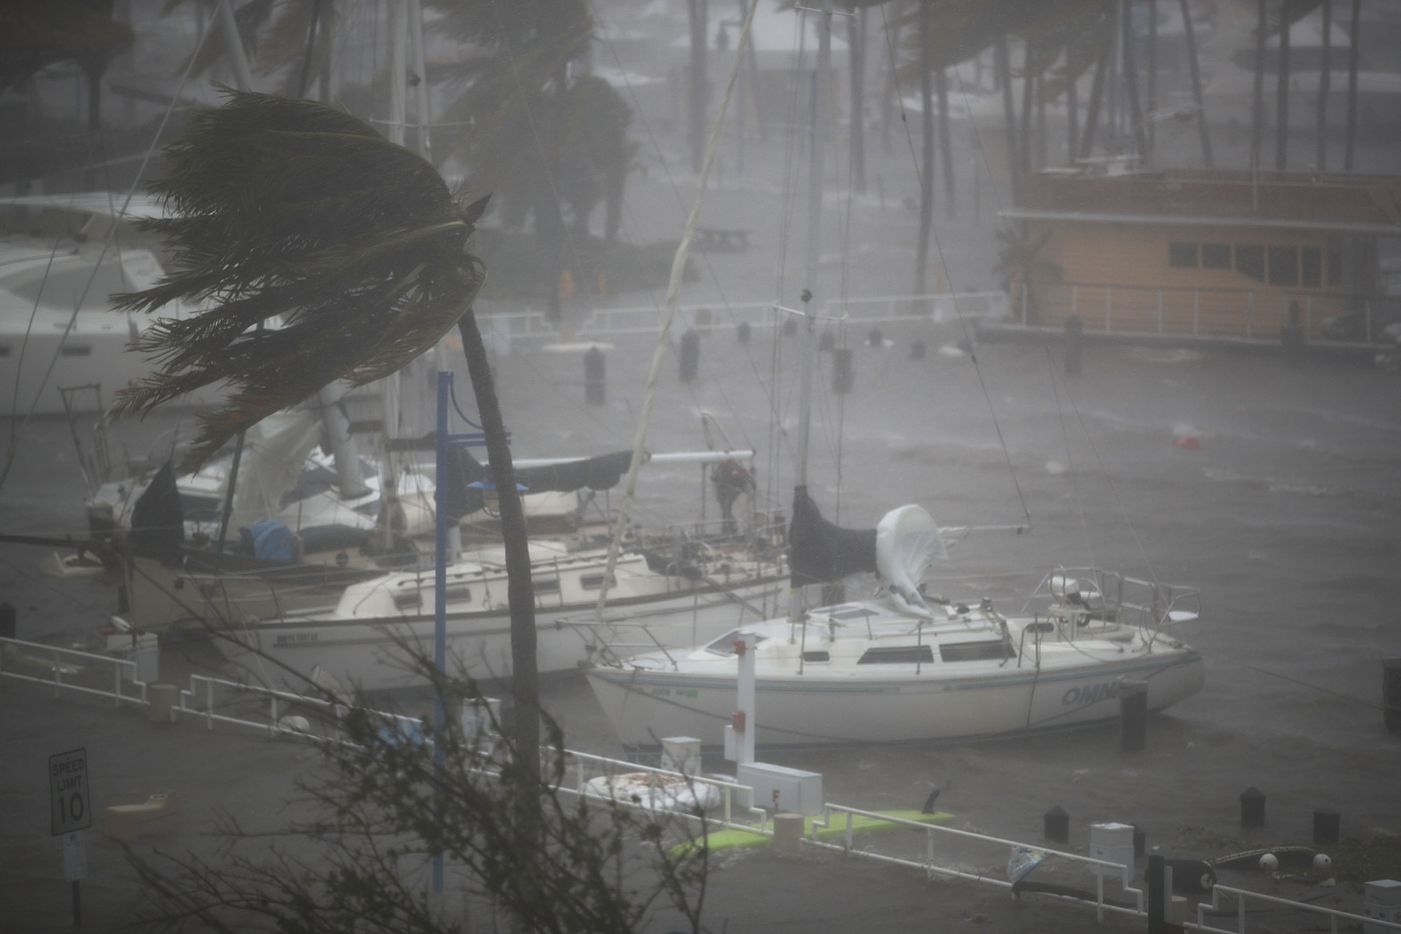 Boats ride out Hurricane Irma in a marina on September 10, 2017 in Miami, Florida. Hurricane Irma made landfall in the Florida Keys as a Category 4 storm on Sunday, lashing the state with 130 mph winds as it moves up the coast.